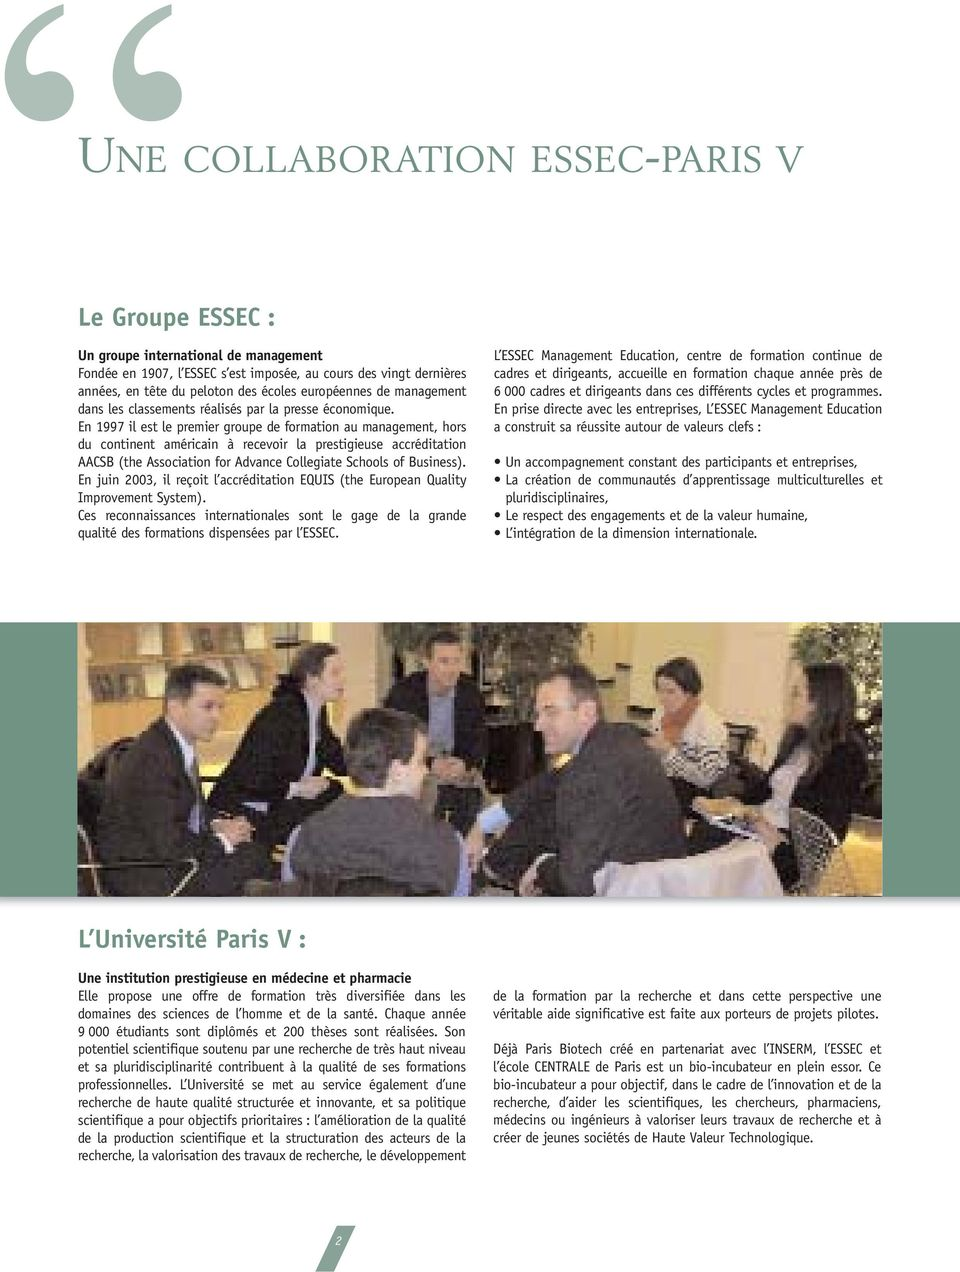 En 1997 il est le premier groupe de formation au management, hors du continent américain à recevoir la prestigieuse accréditation AACSB (the Association for Advance Collegiate Schools of Business).